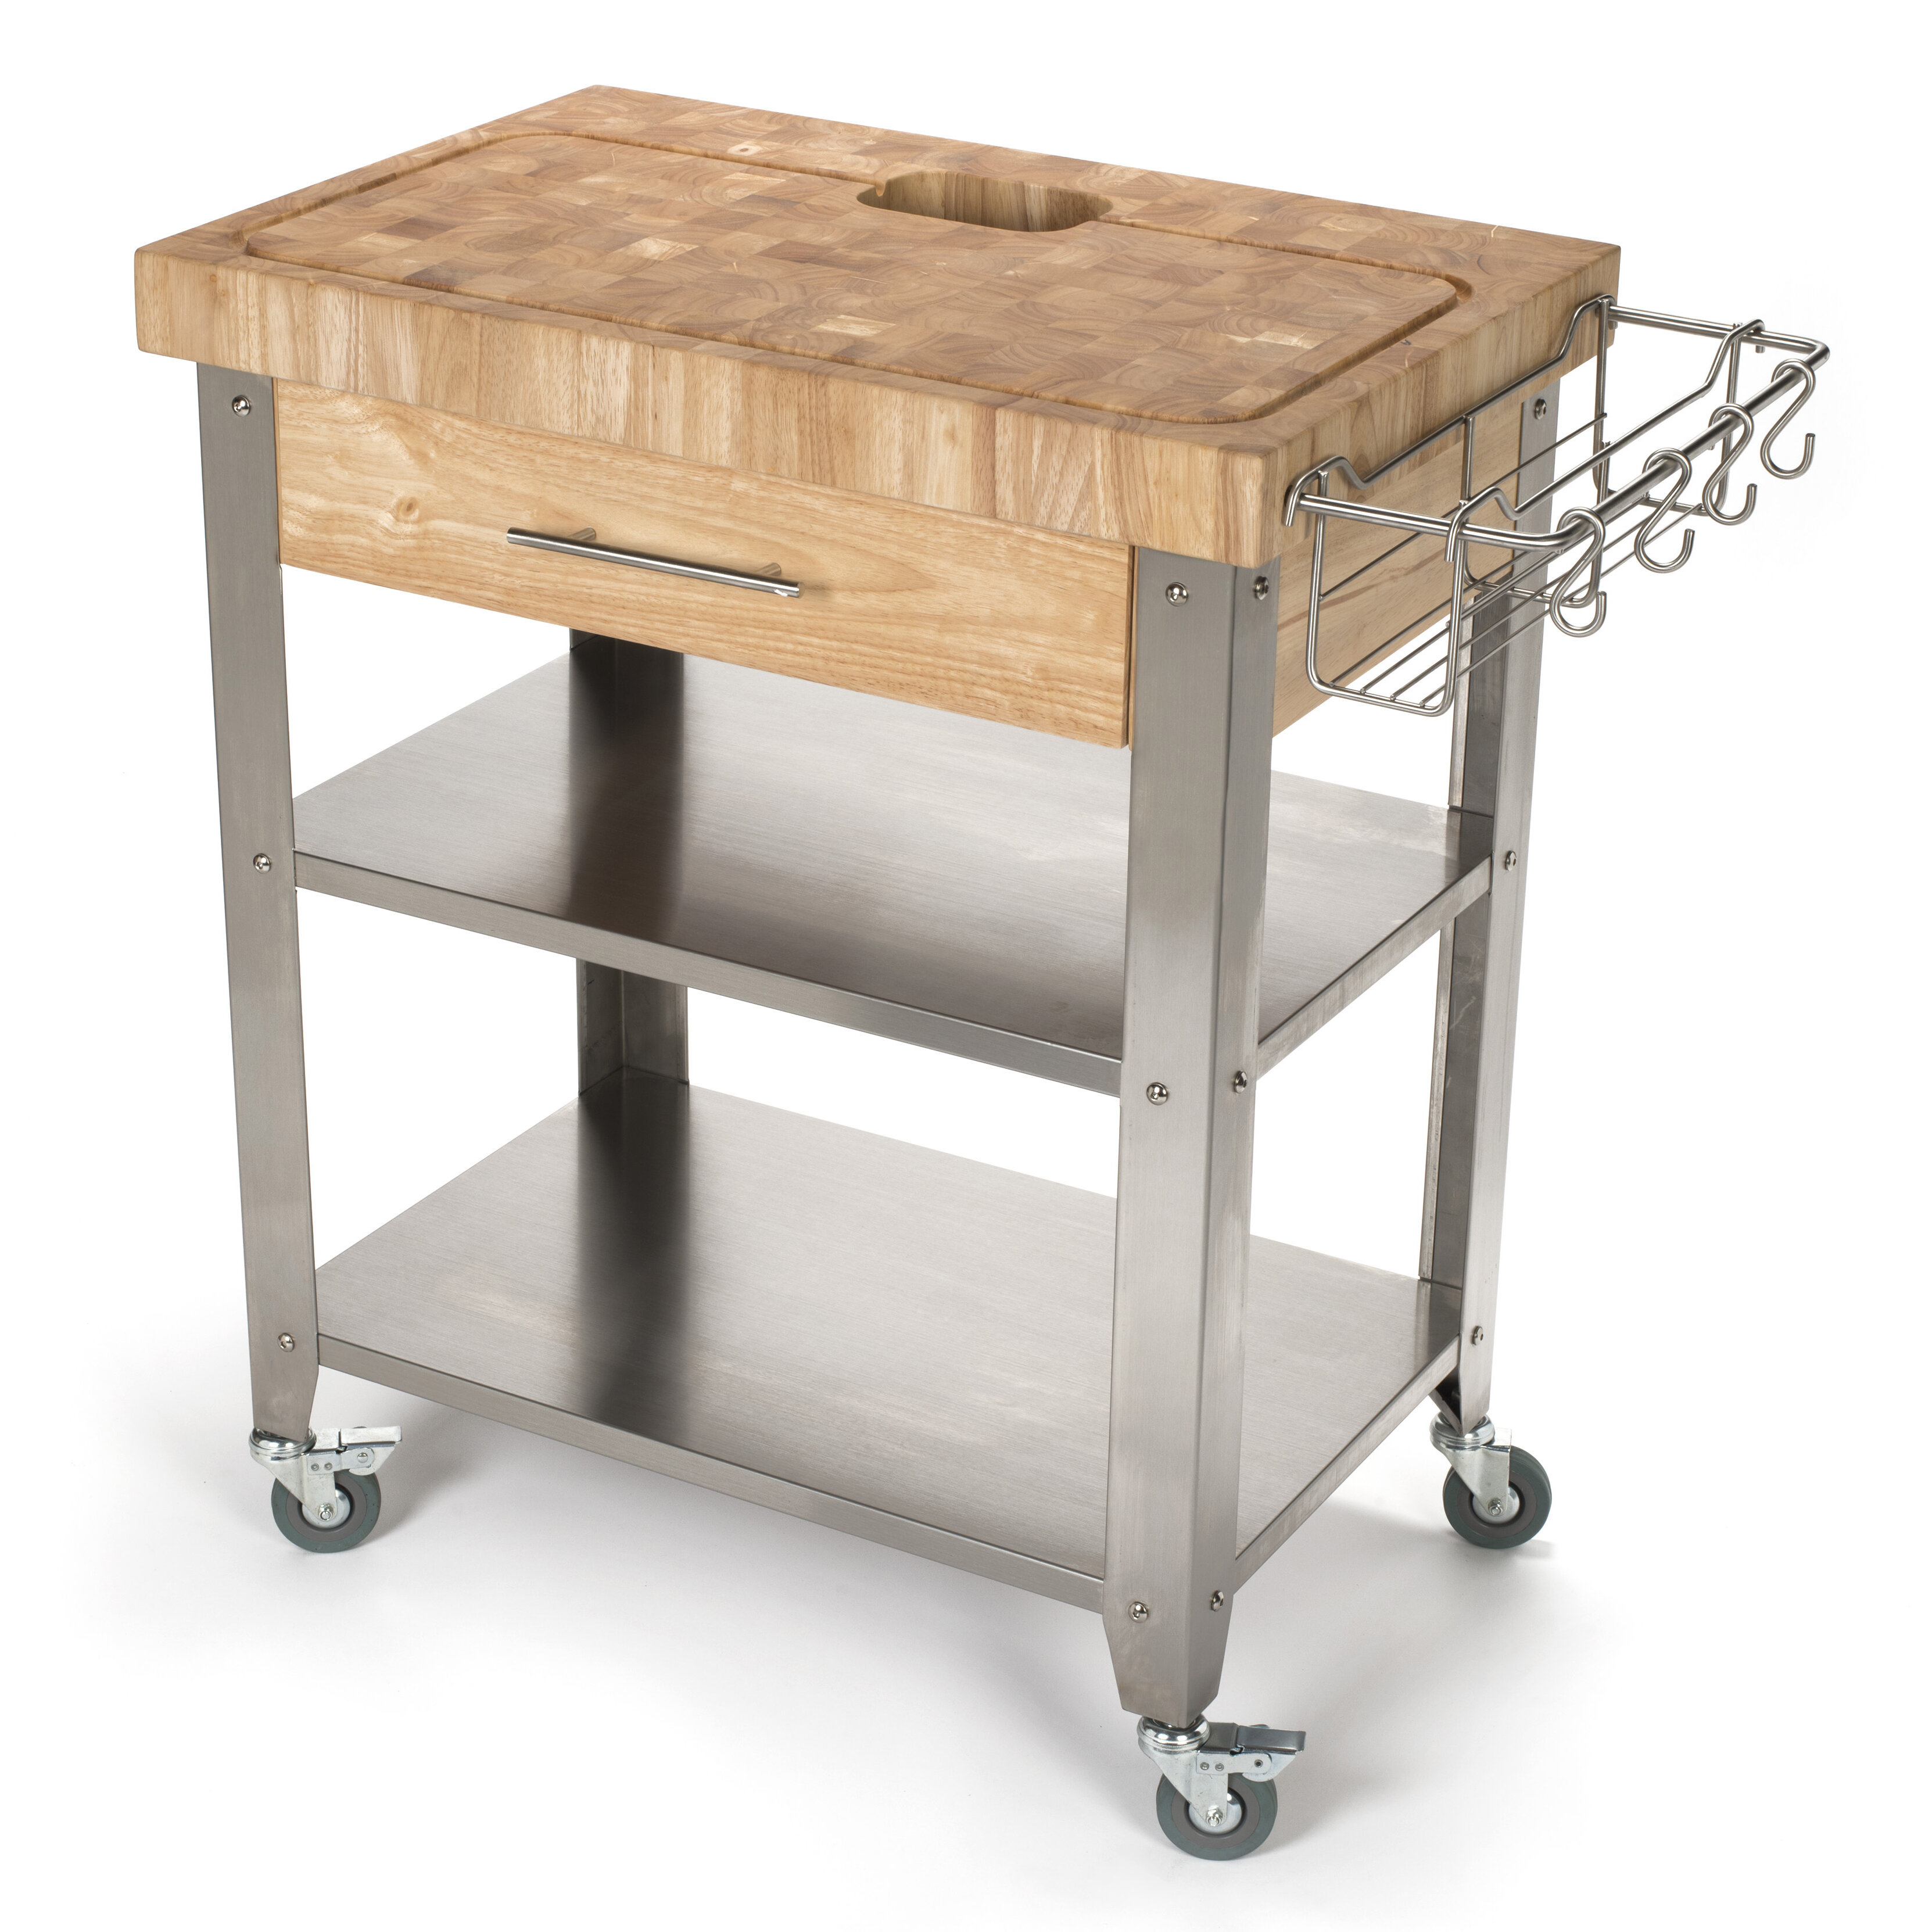 Seville Classics Rolling Oval Solid-Bamboo Butcher Block Top Kitchen Island  Cart with Storage, 30\